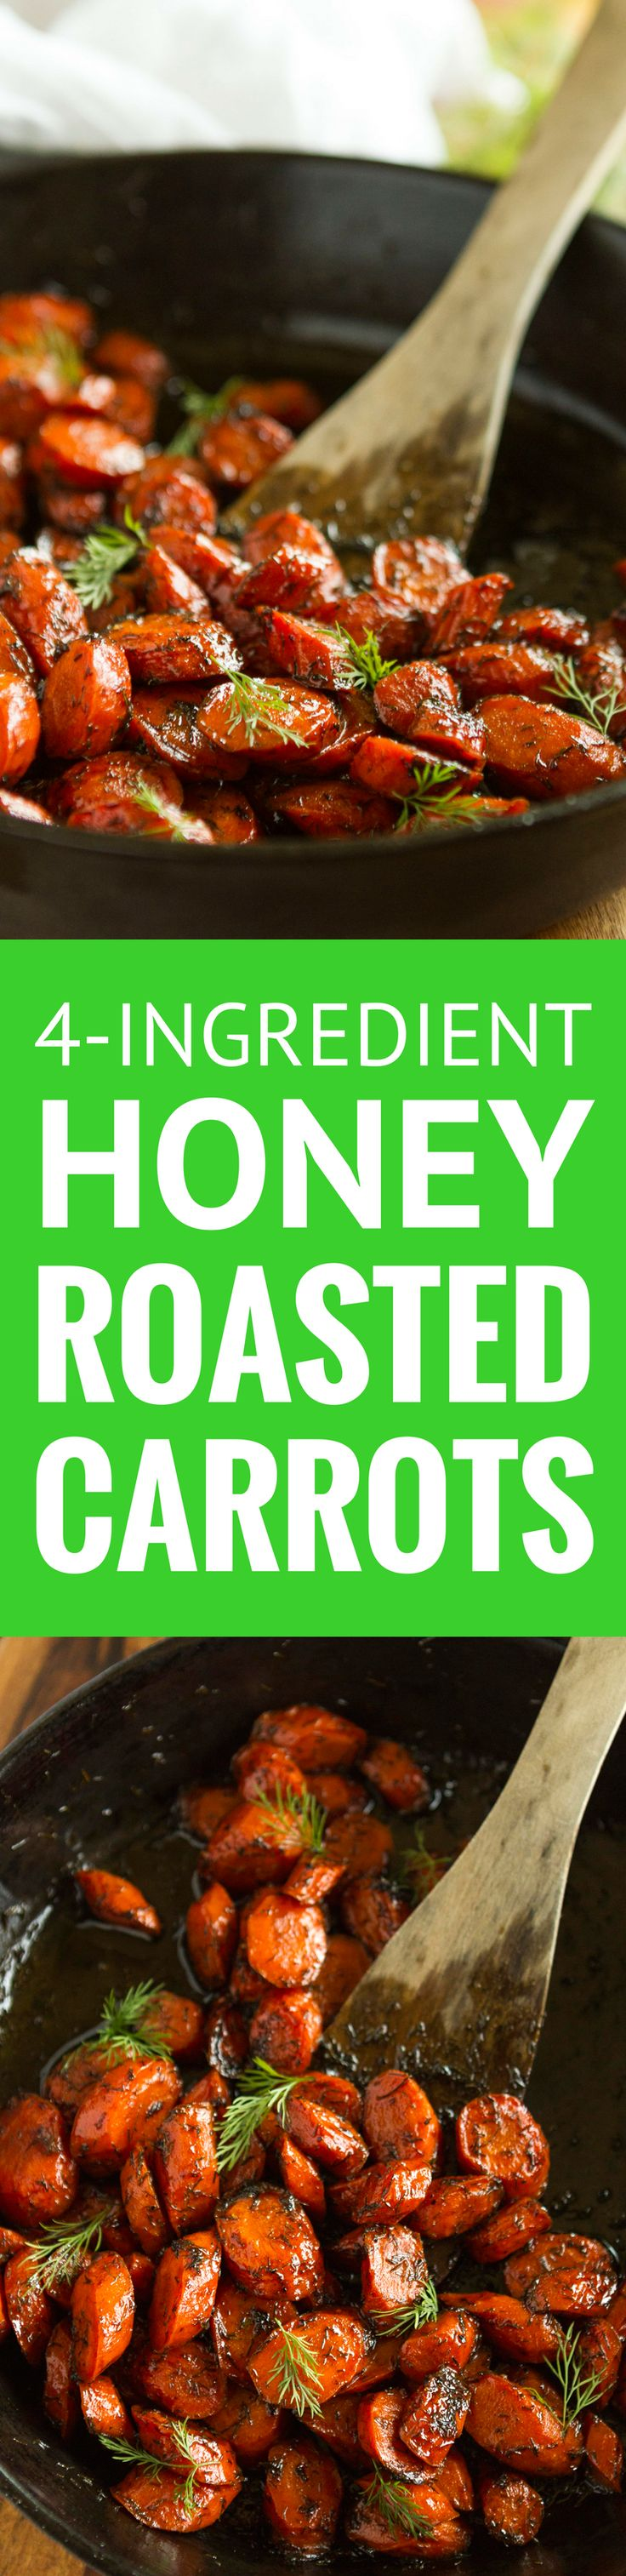 Brown Butter Honey Roasted Carrots with Dill -- this easy roasted carrots recipe is sure to get the whole family to eat their veggies! Just 4 simple ingredients: brown butter, carrots (of course), honey and dried dill… Totally amazing!!! | roasted carrots honey | roasted carrots oven | roasted carrots healthy | find the recipe on unsophisticook.com